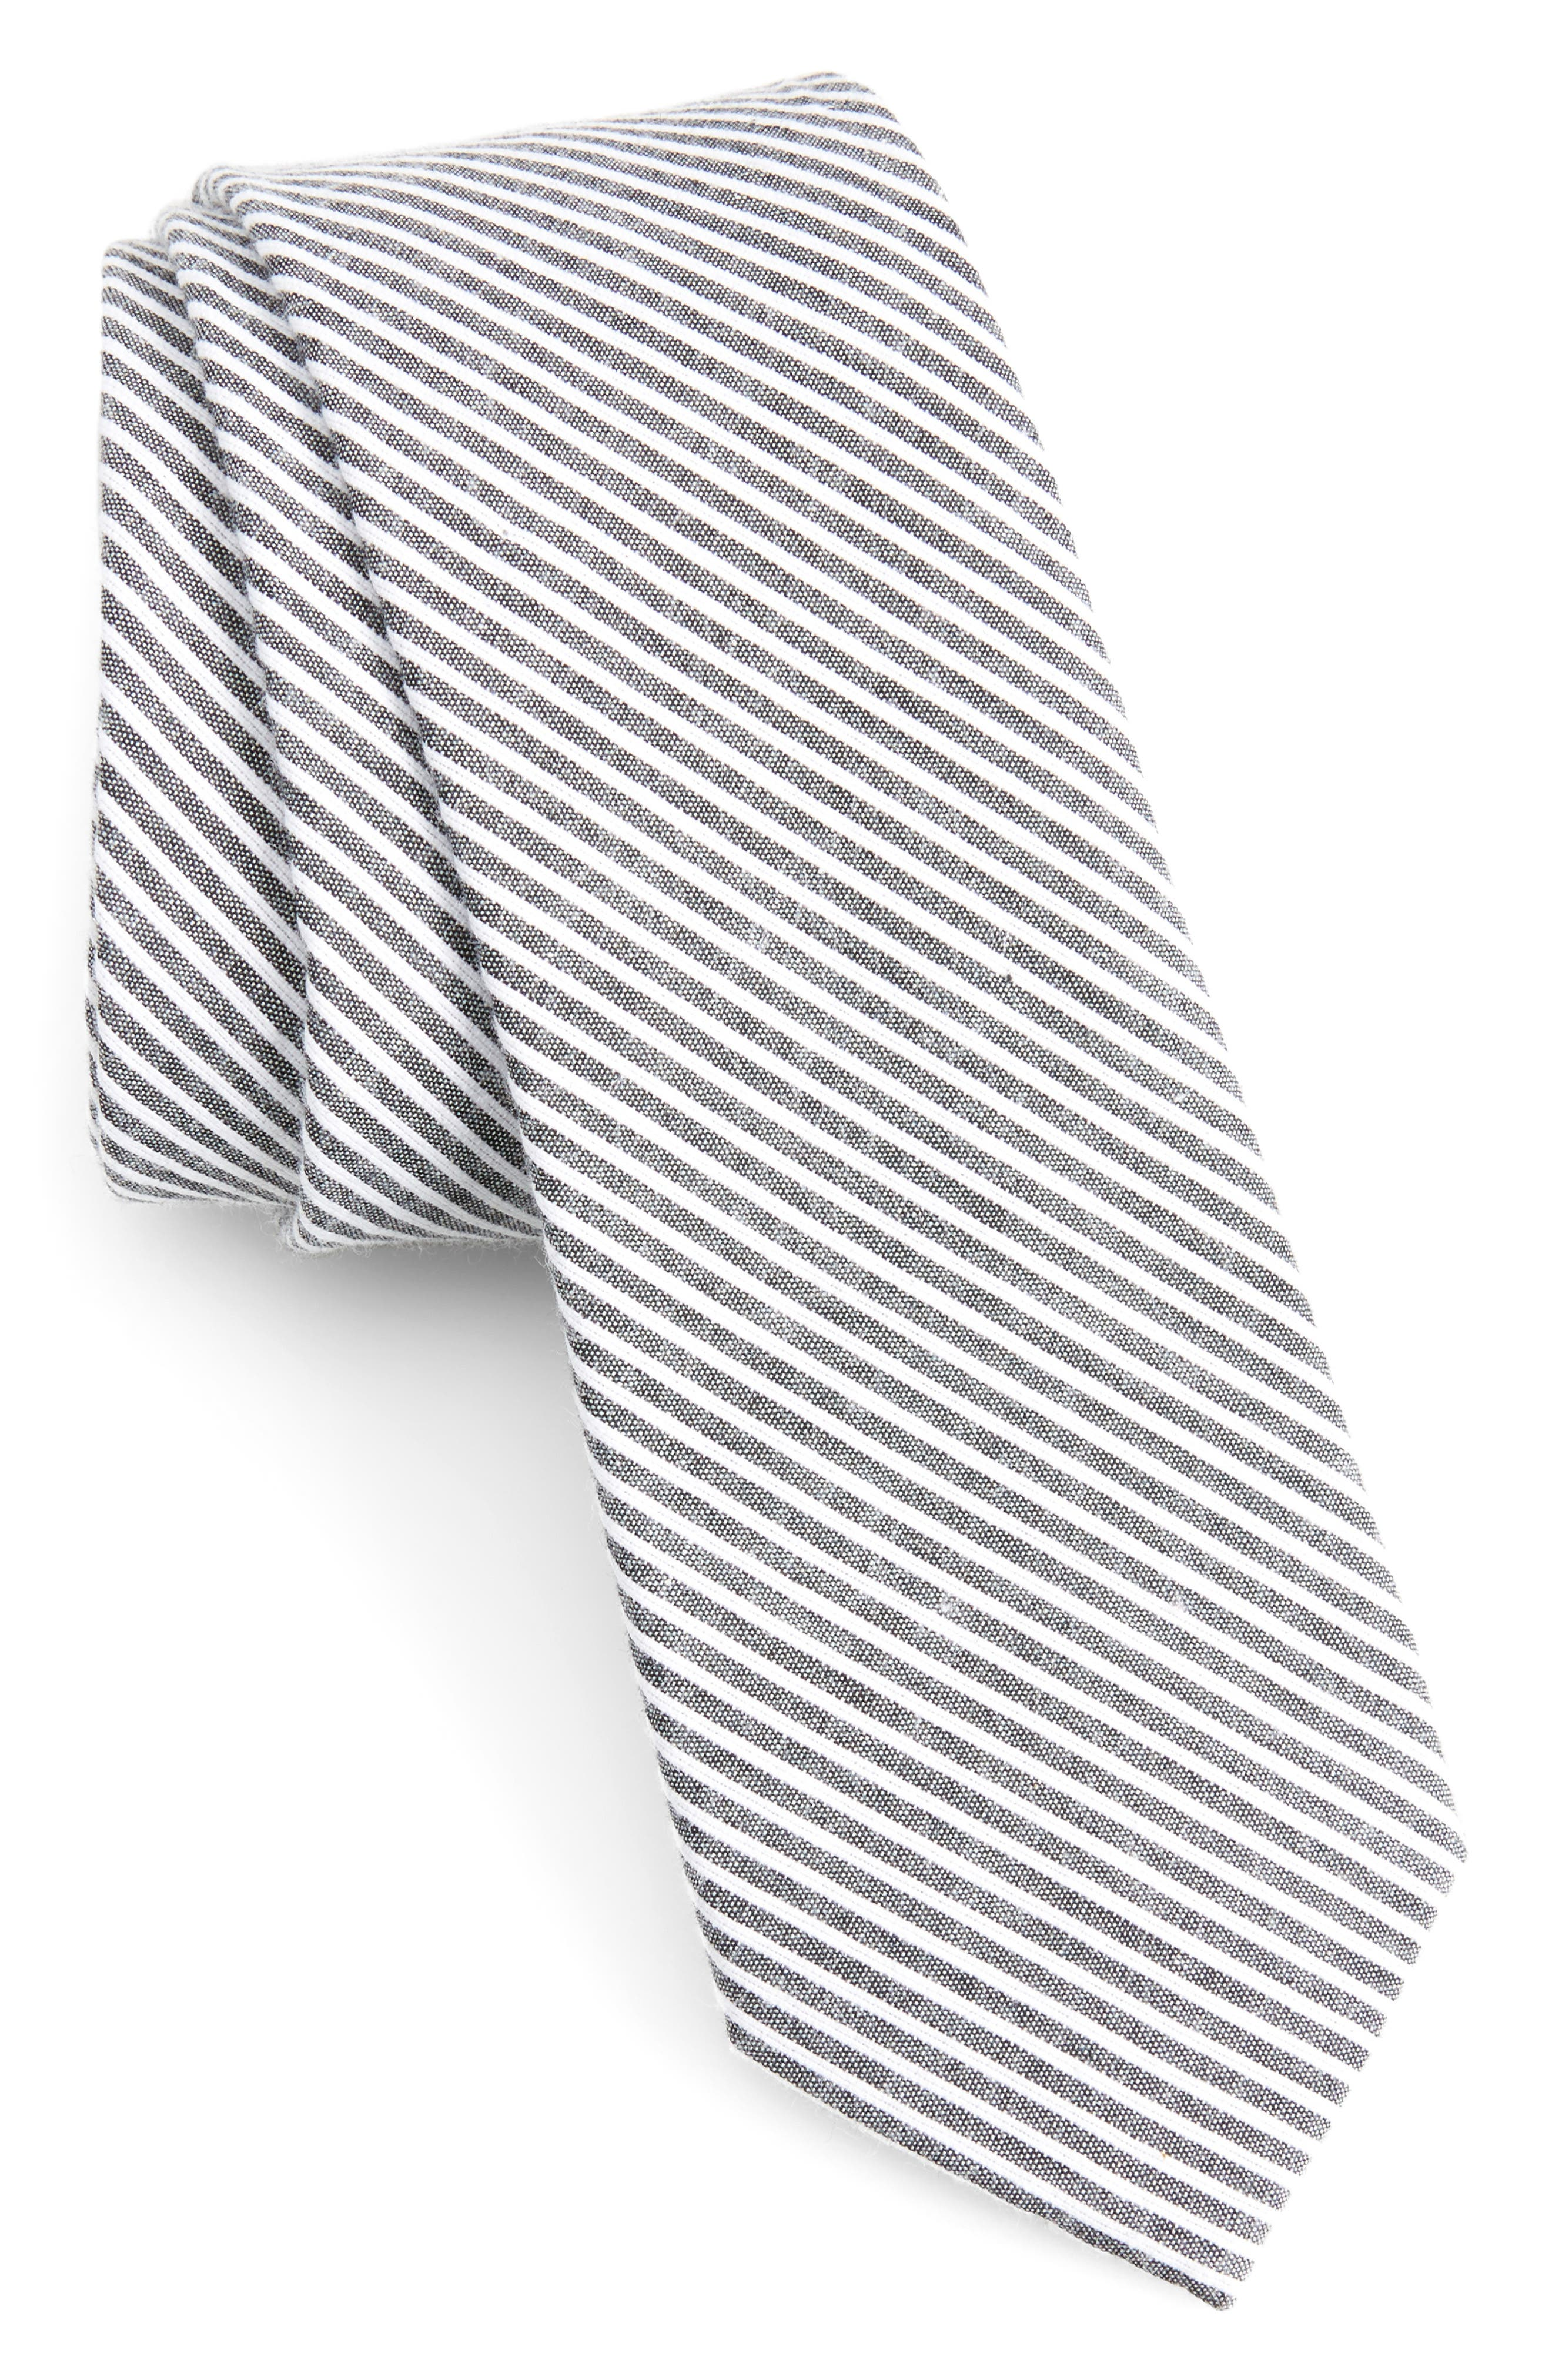 Kenton Stripe Cotton Tie,                             Main thumbnail 1, color,                             Black